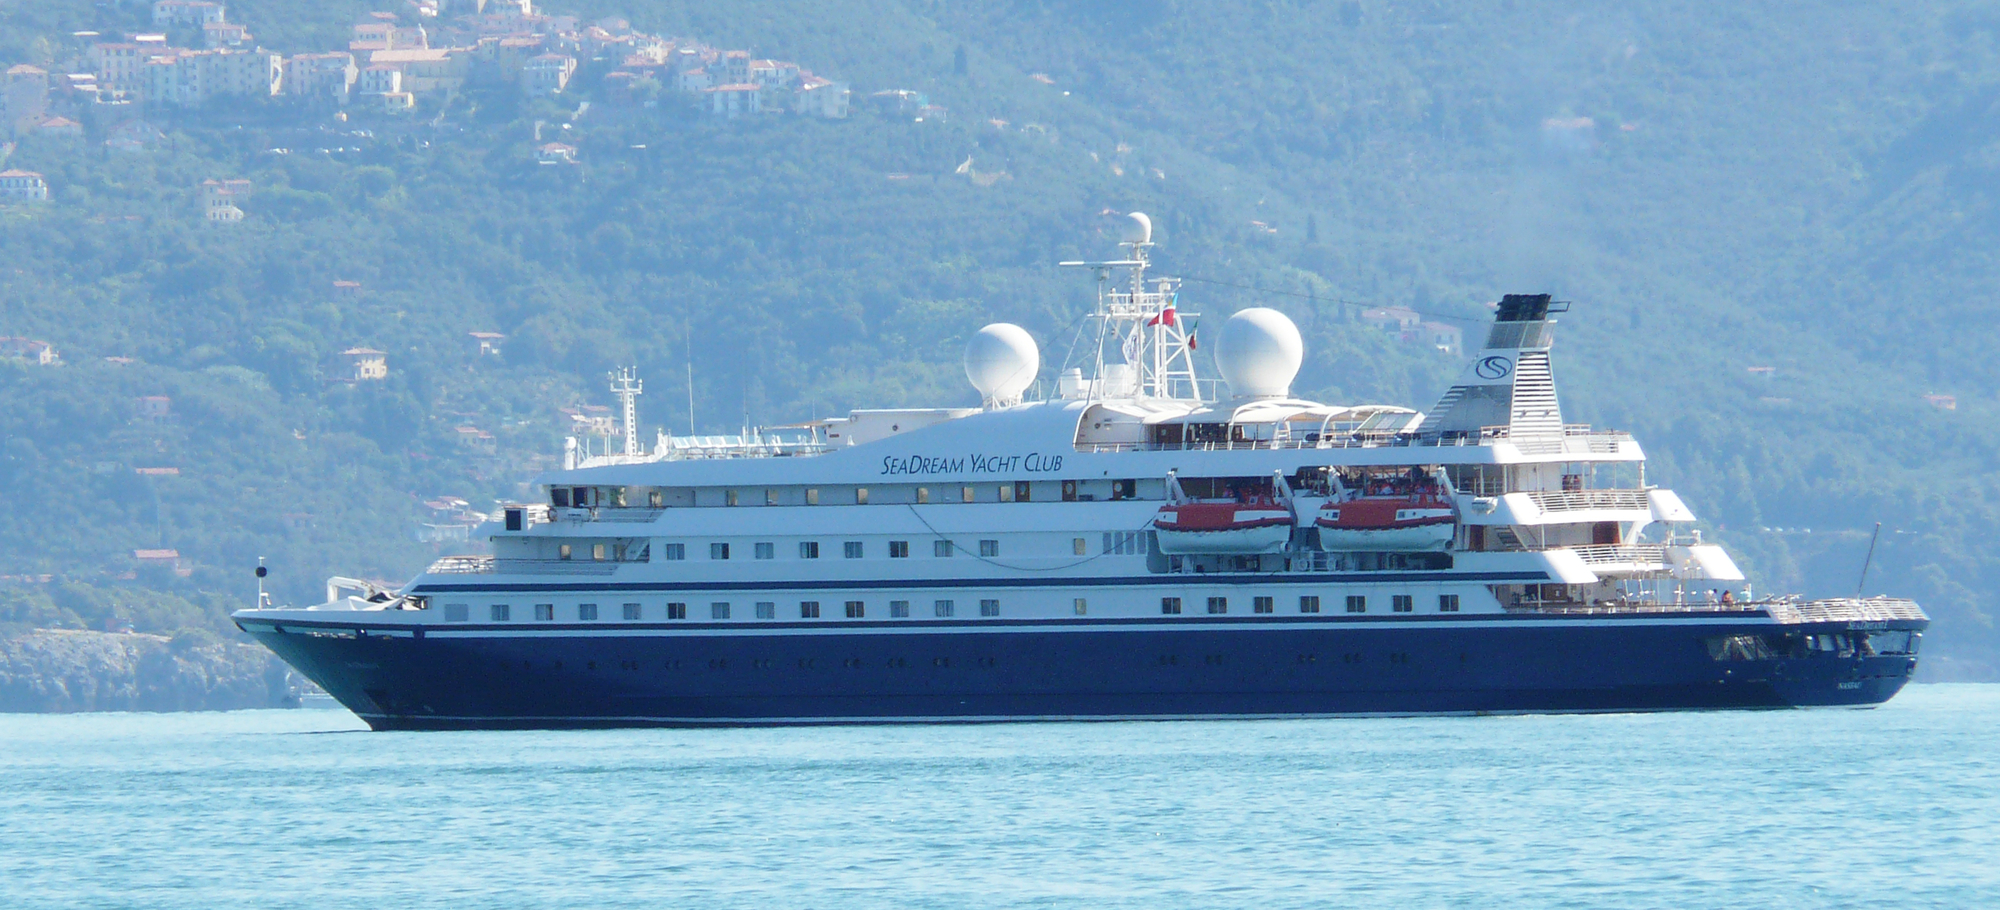 Seadream Yacht Club.jpg